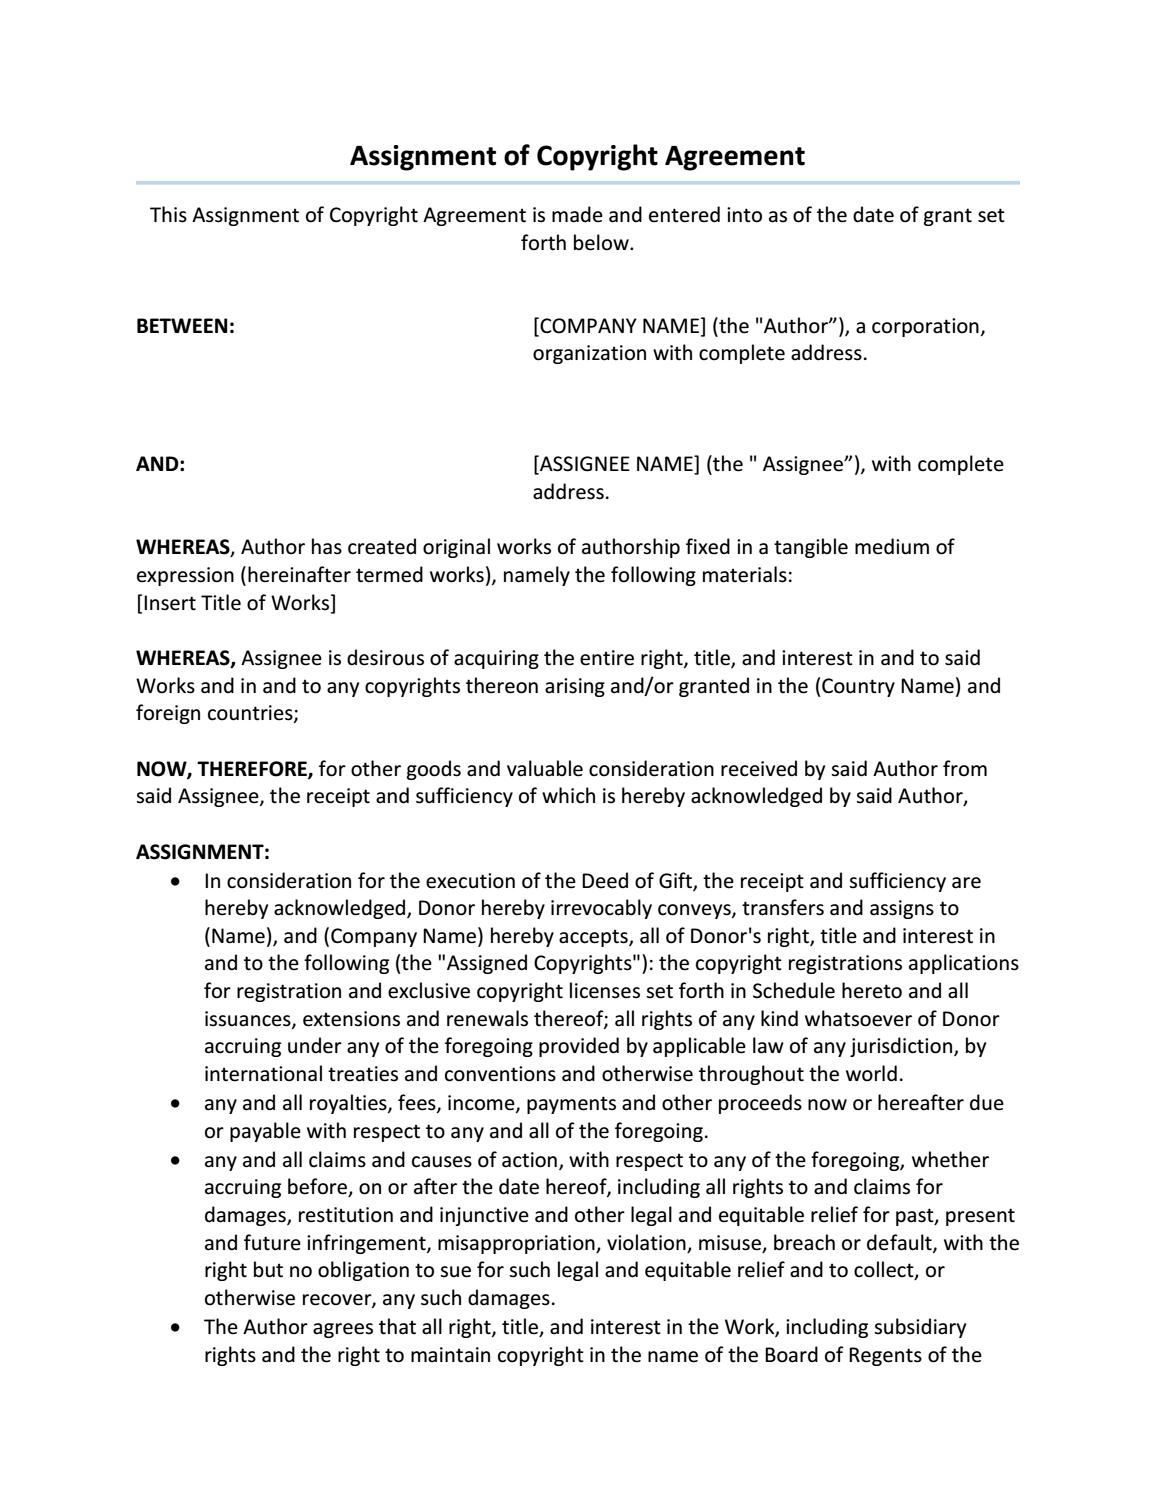 Words Of Agreement generic purchase order things to do templates – Words of Agreement